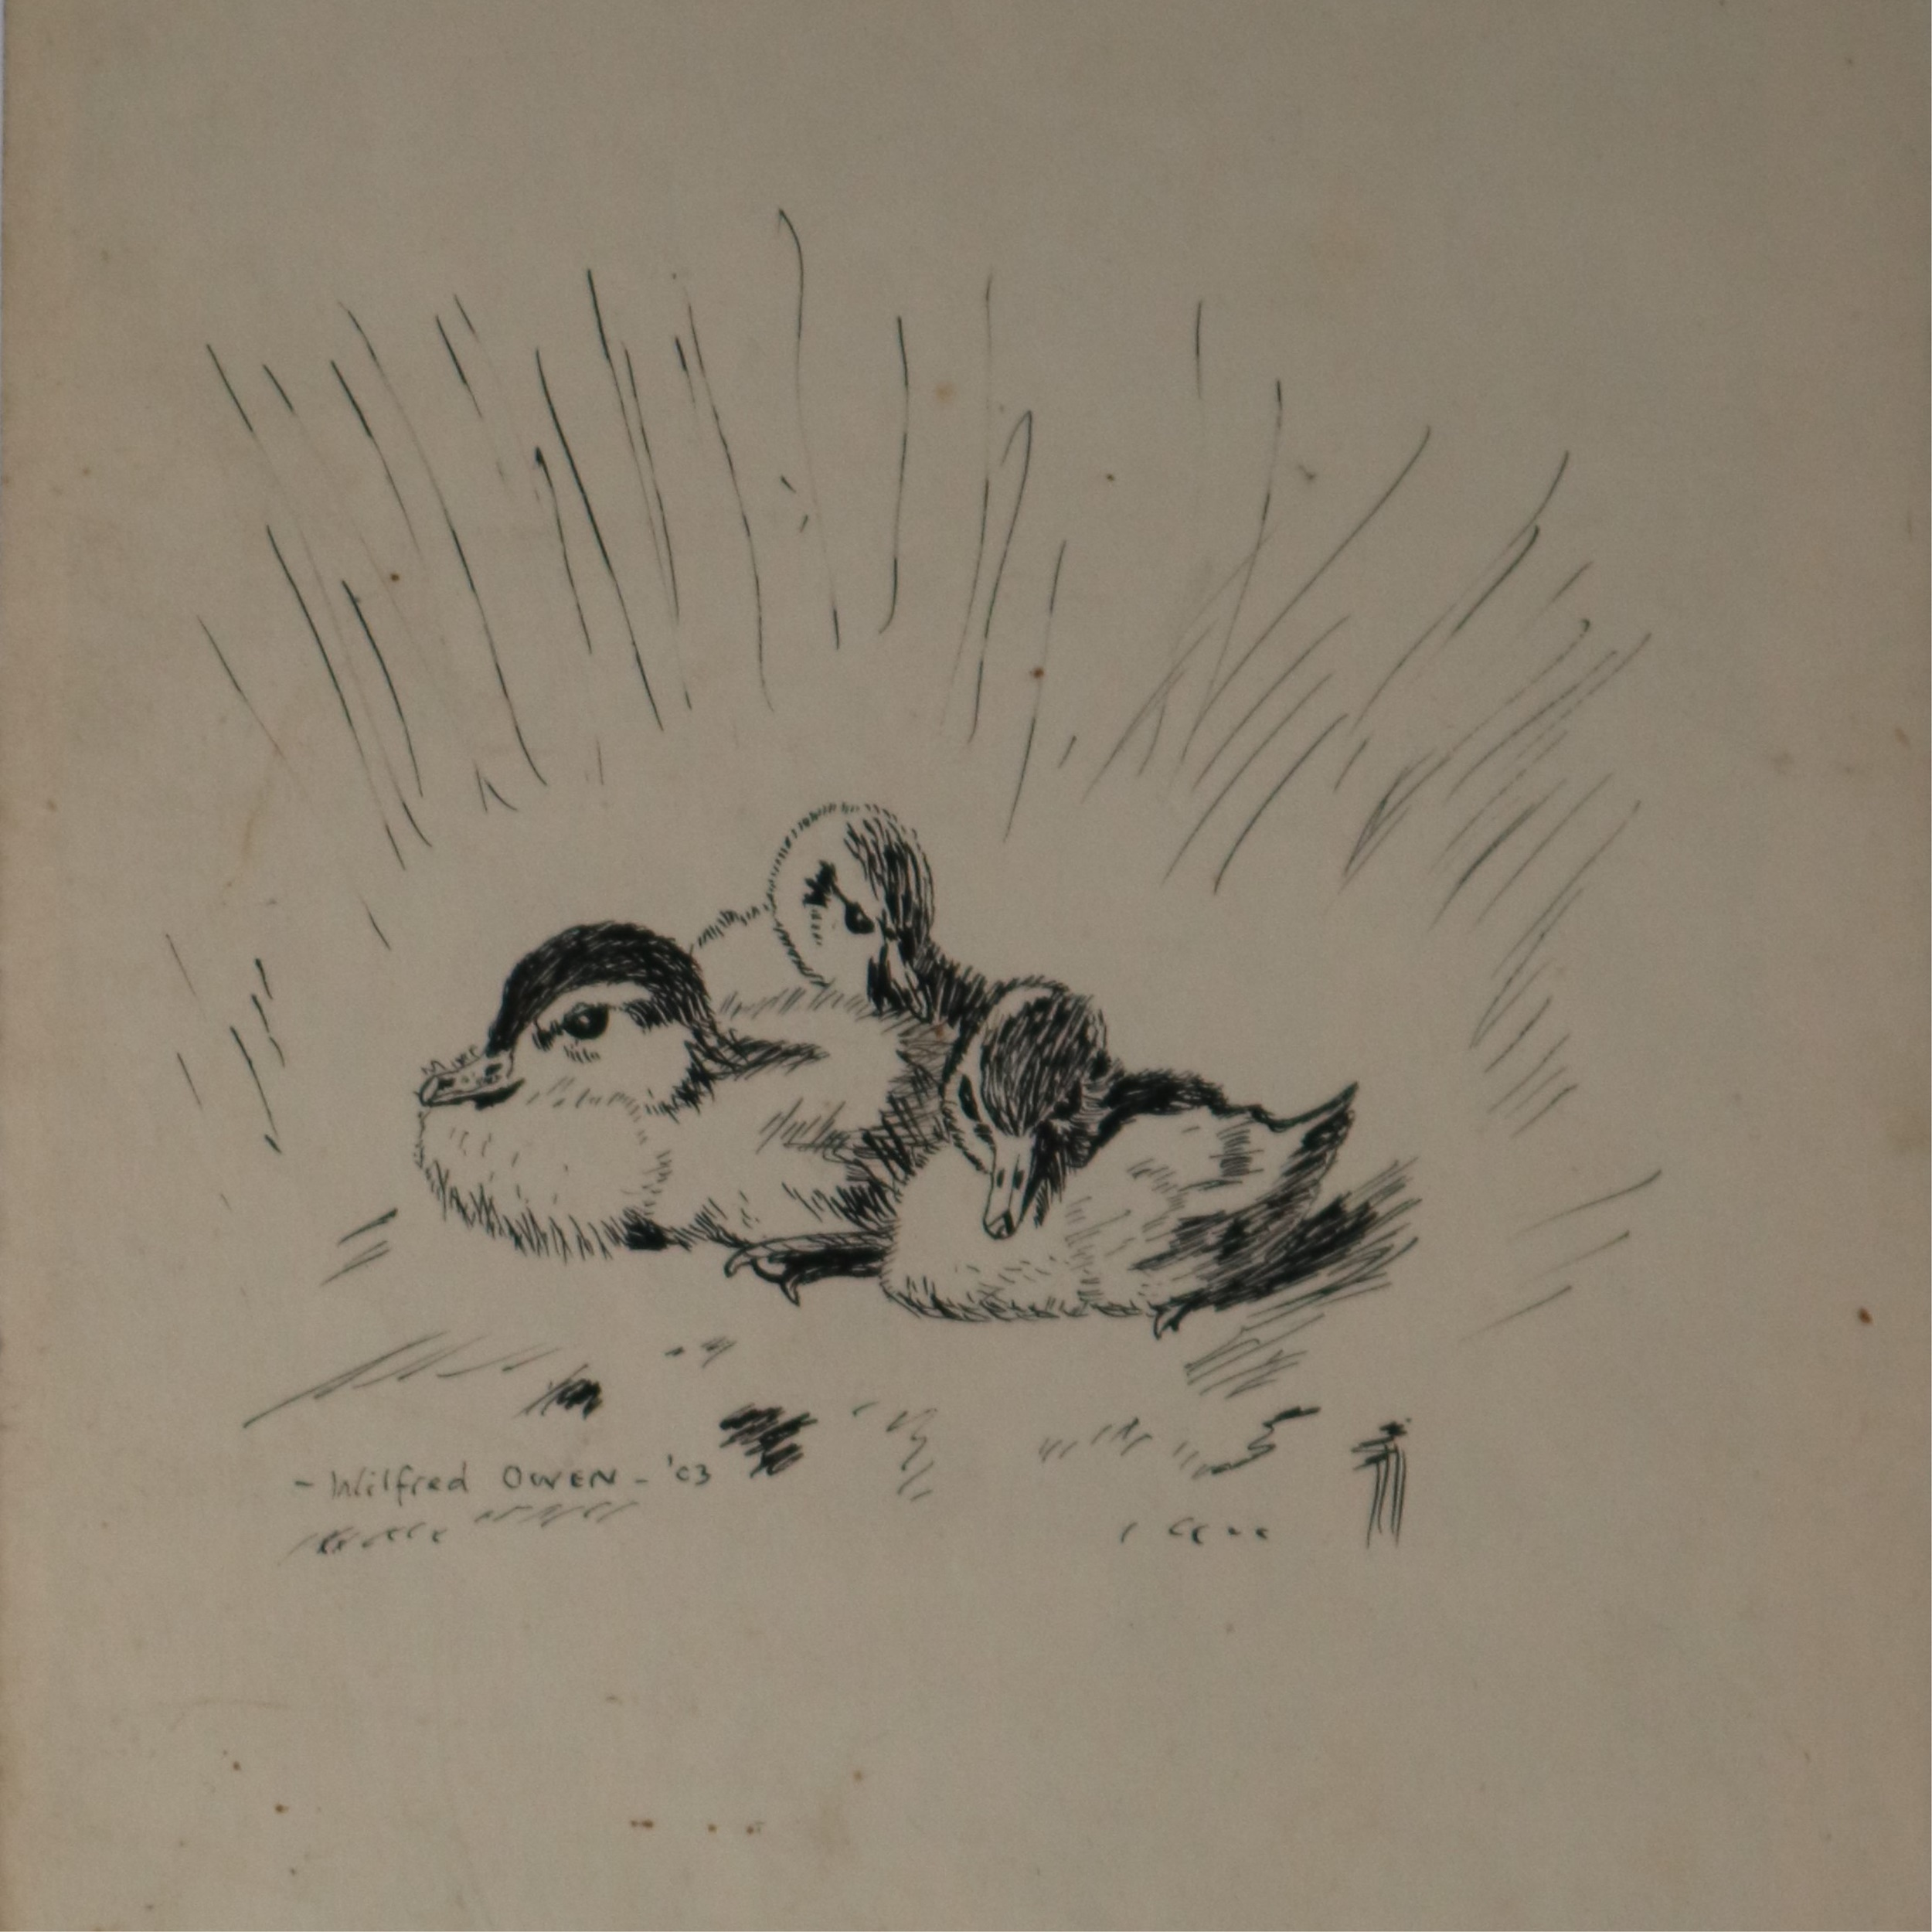 Wilfred Owen (British 1898-1918), Ink Sketch of Three Ducklings